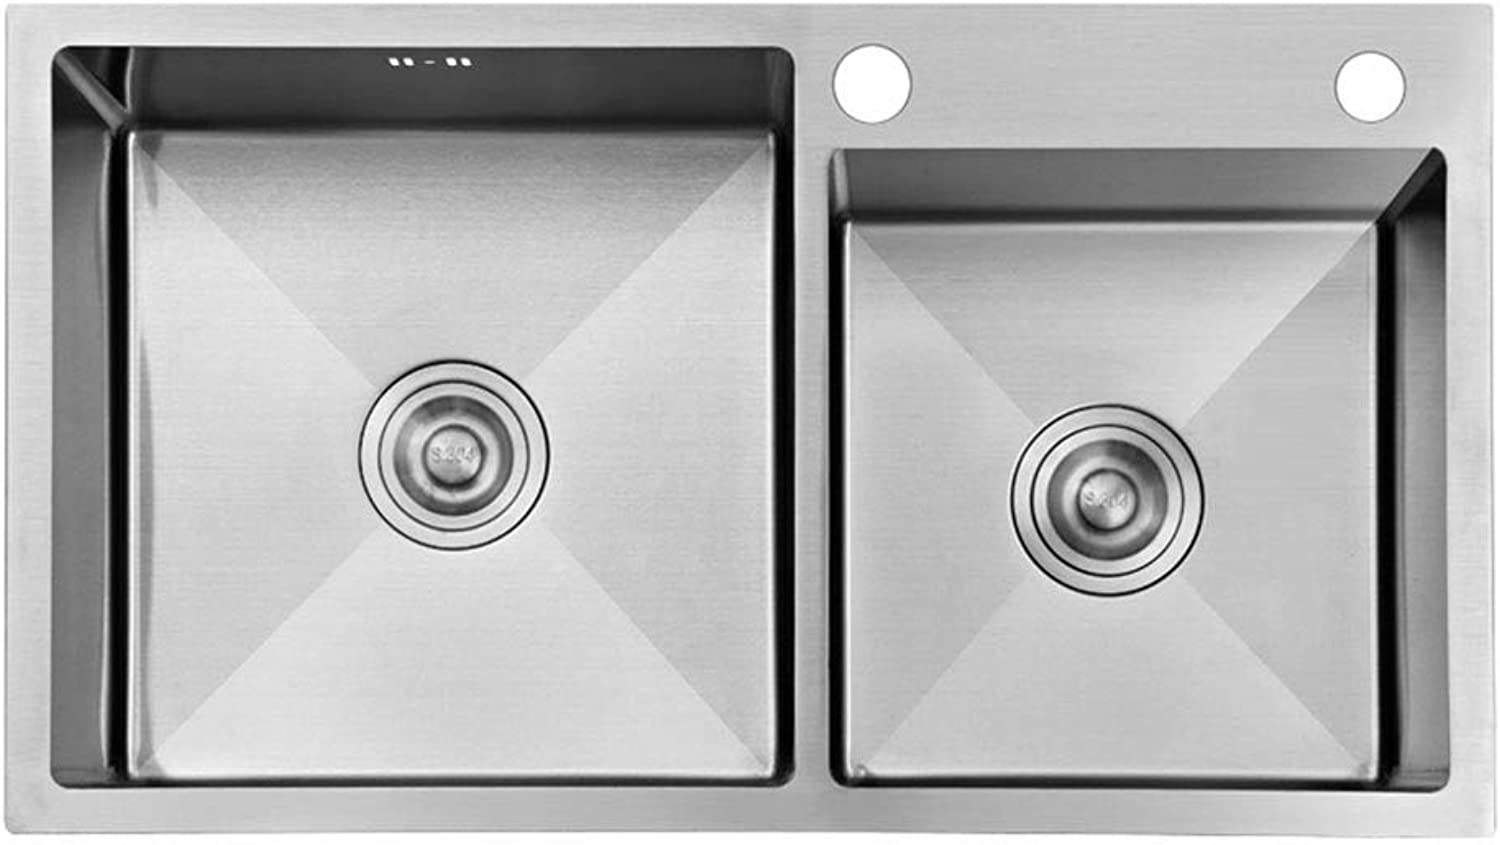 Wash Stands & Vanity Units Sink Stainless Steel Sink Manual Sink Double Sink Kitchen Sink Square Sink Dish Basin 4MM Thick Stainless Steel Sink Wash Basin (color   Silver, Size   78  43  22 cm)